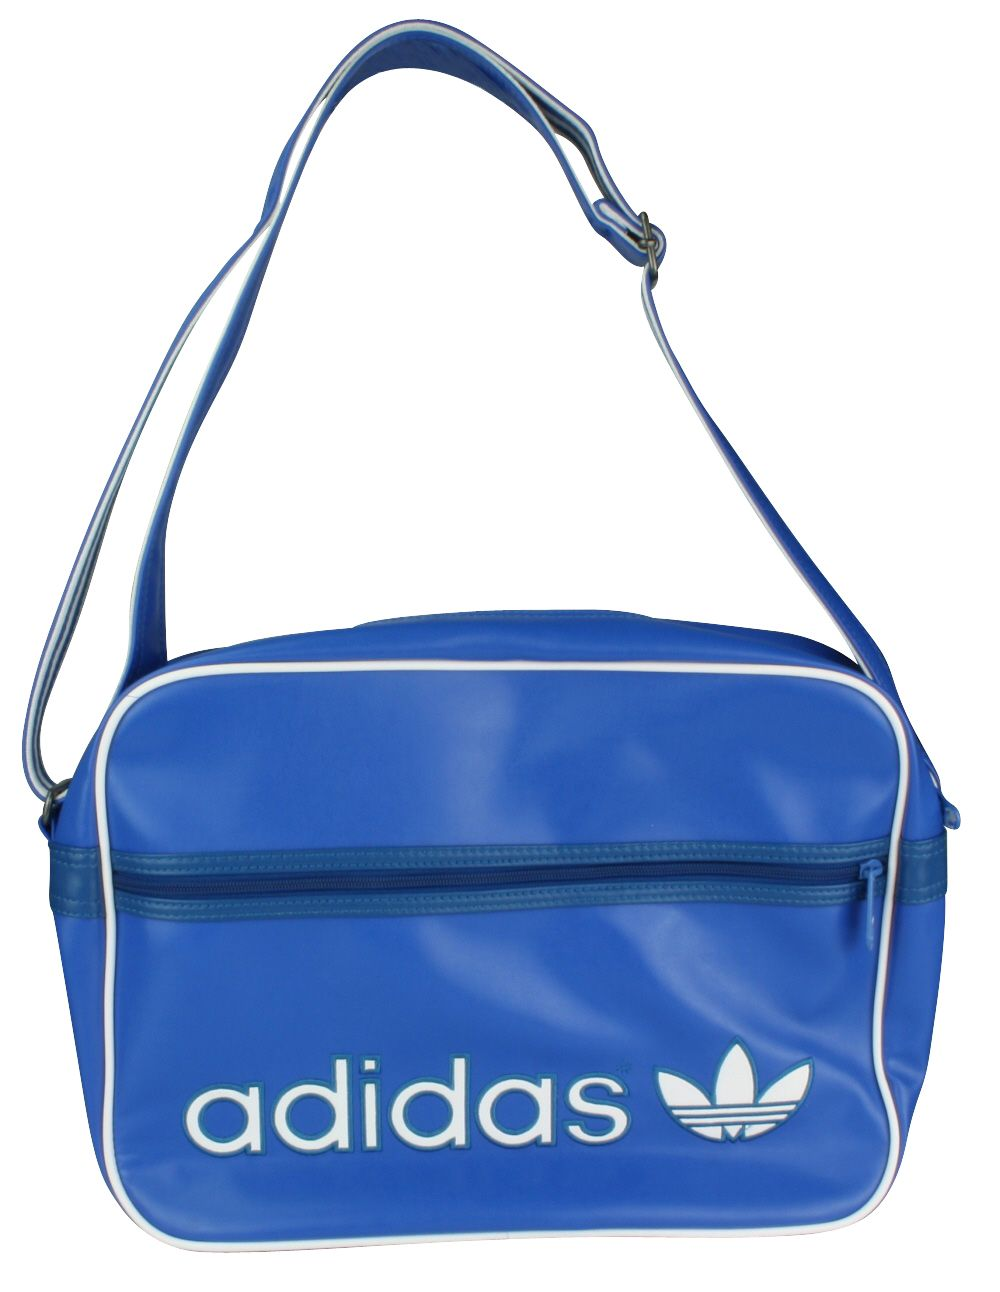 faacdc1d80 Adidas Airline Bag Gussied Up